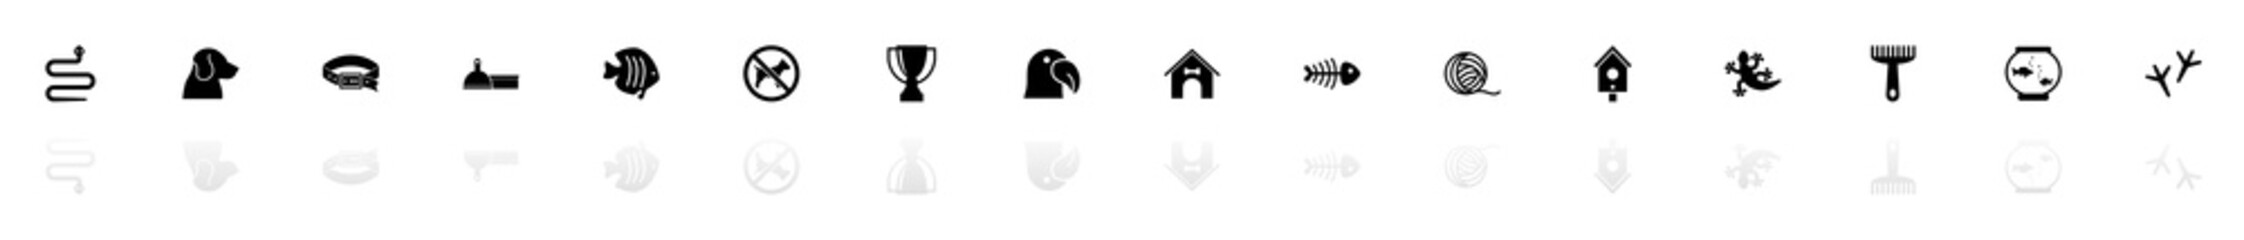 Pets icons - Black horizontal Illustration symbol on White Background with a mirror Shadow reflection. Flat Vector Icon.